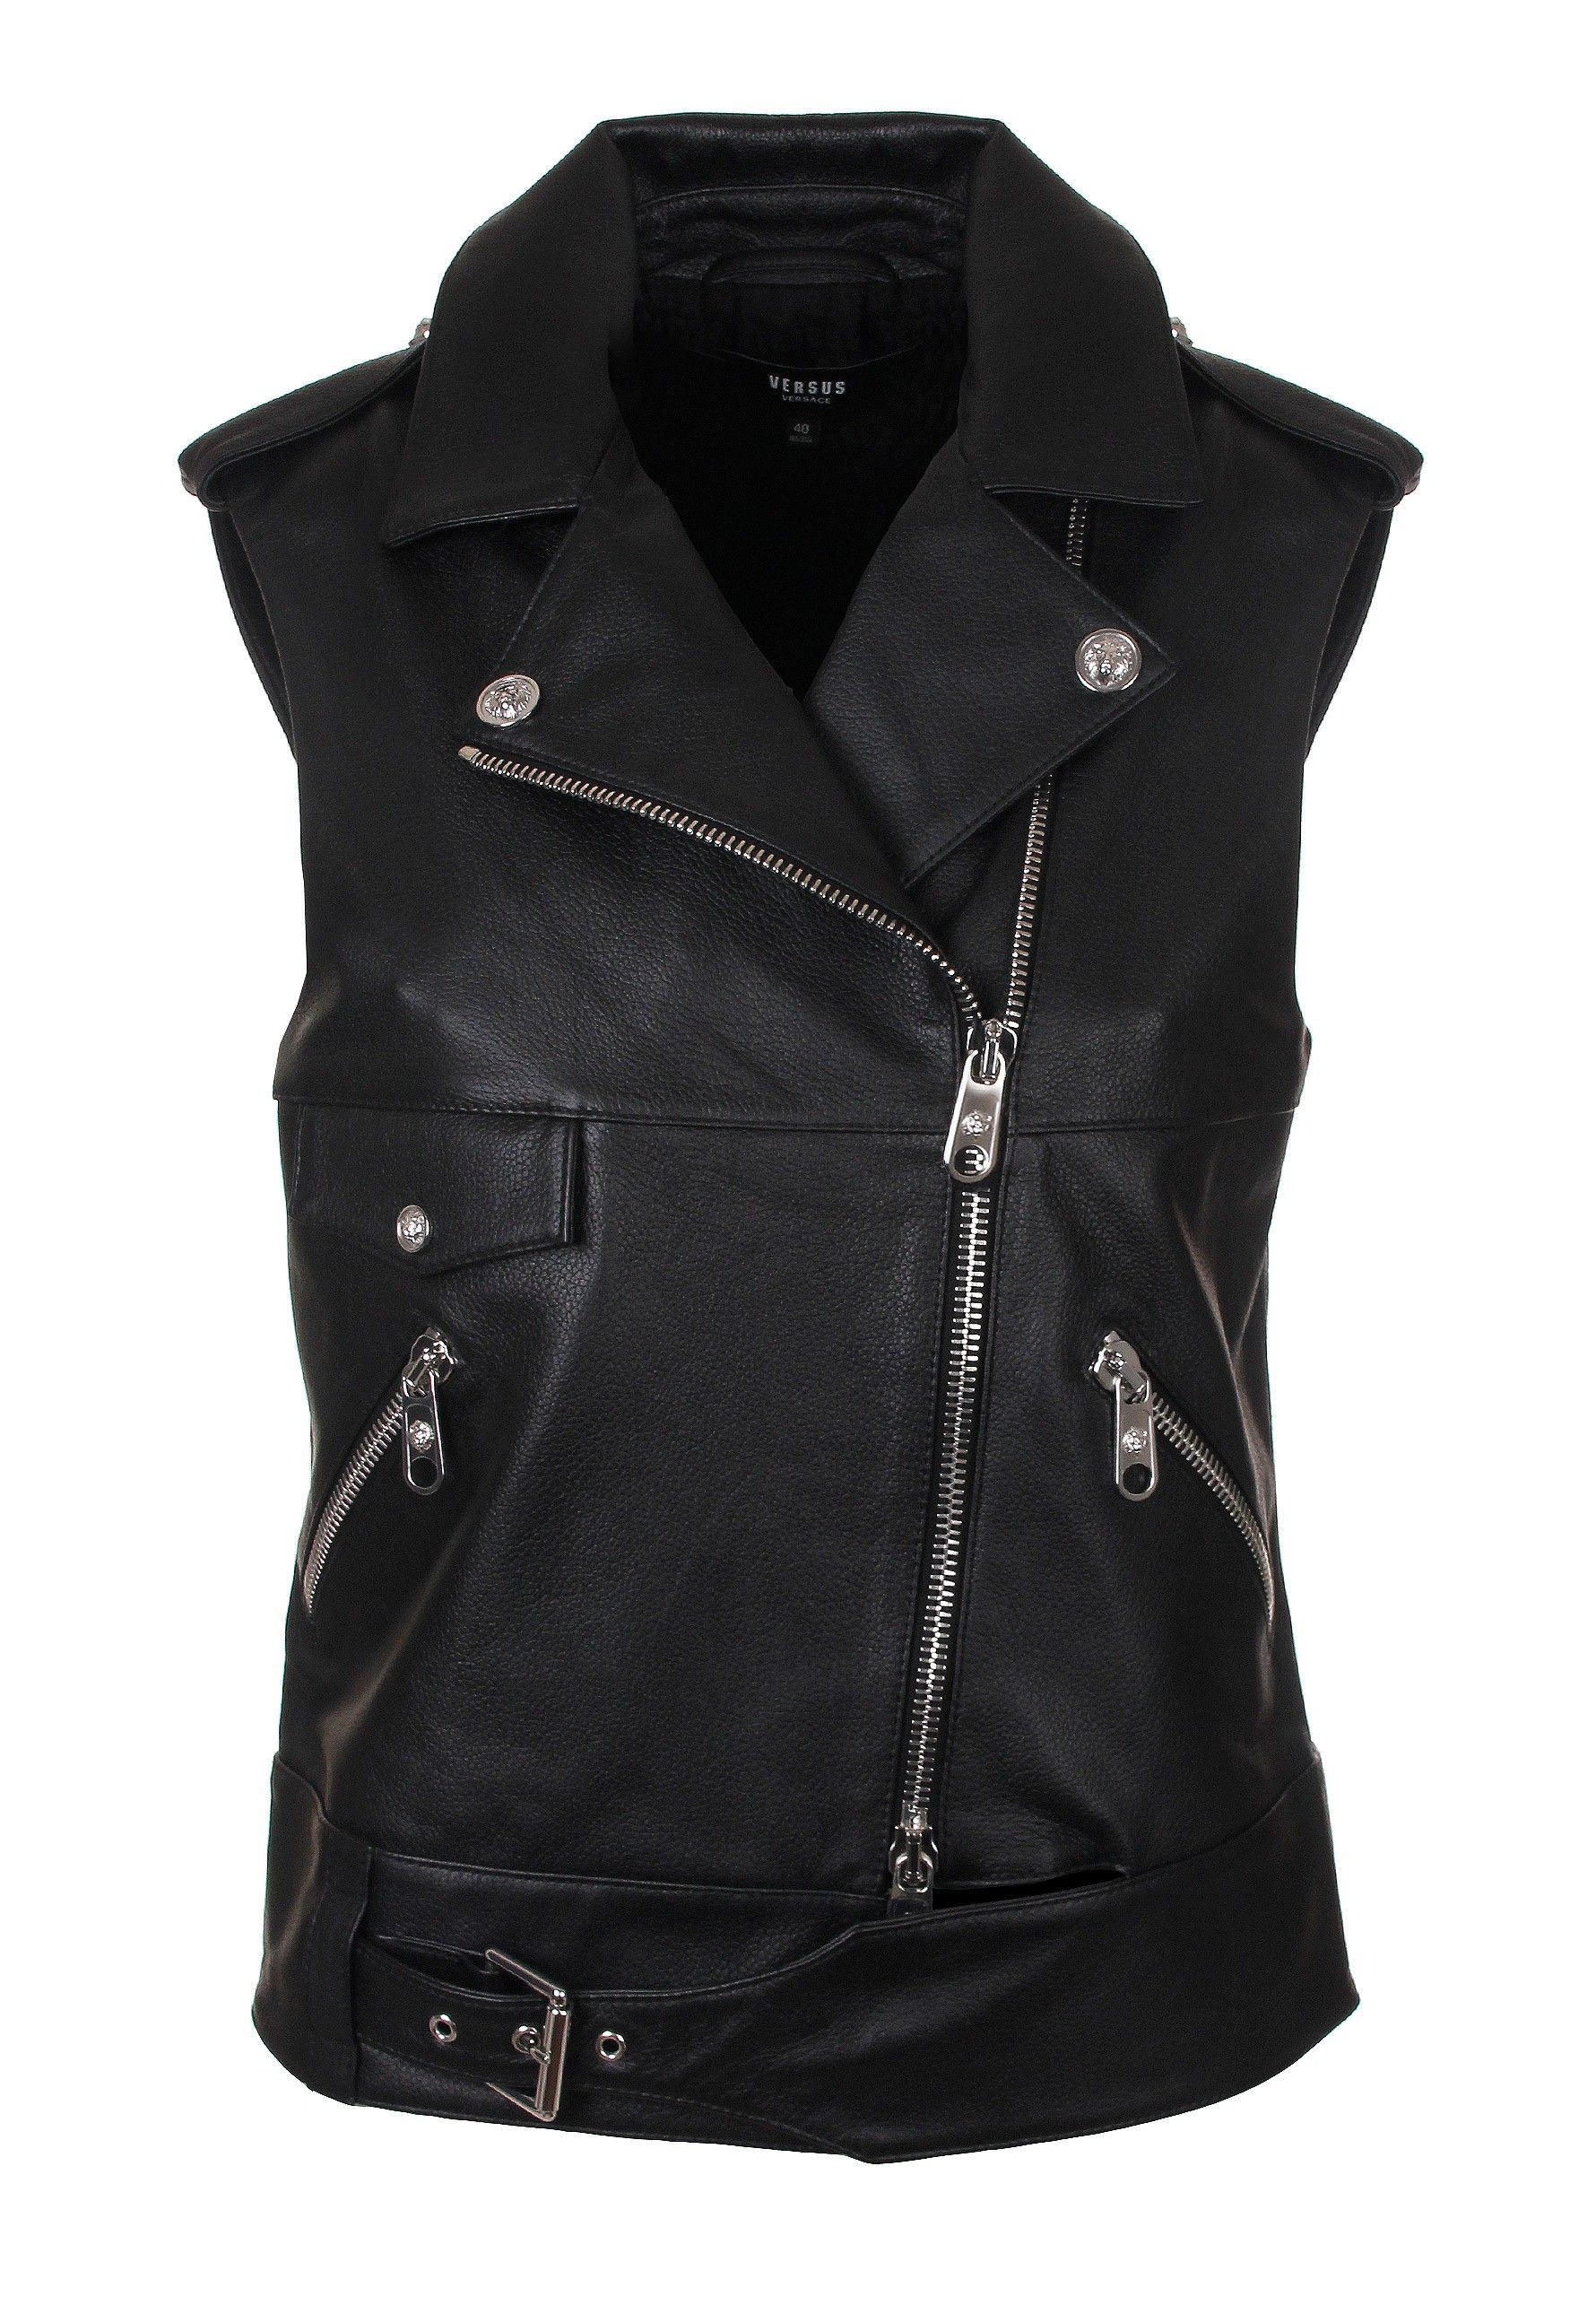 a48776066 Versus Versace Sleeveless Leather Biker Jacket in black. Cut from ...